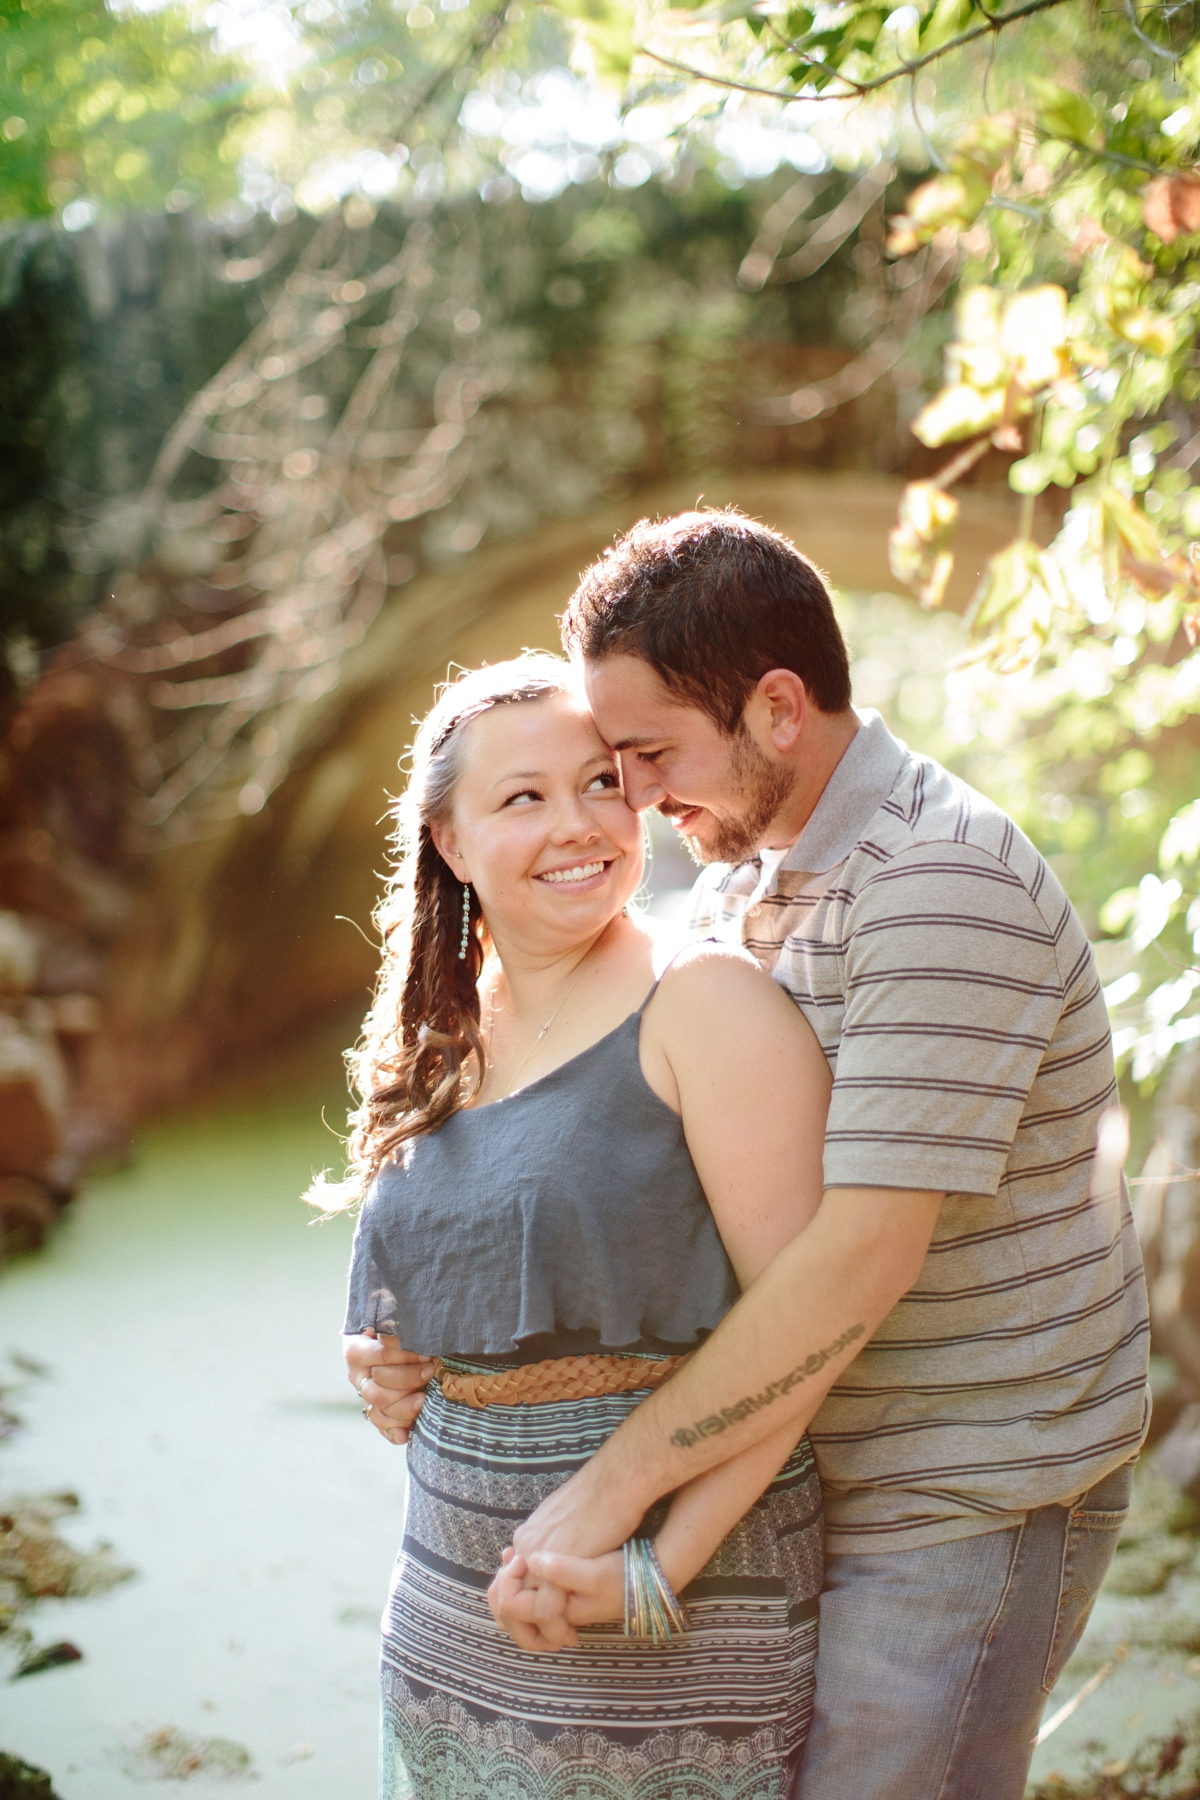 destination_wedding_photographer_estate_engagement_session_0003.jpg